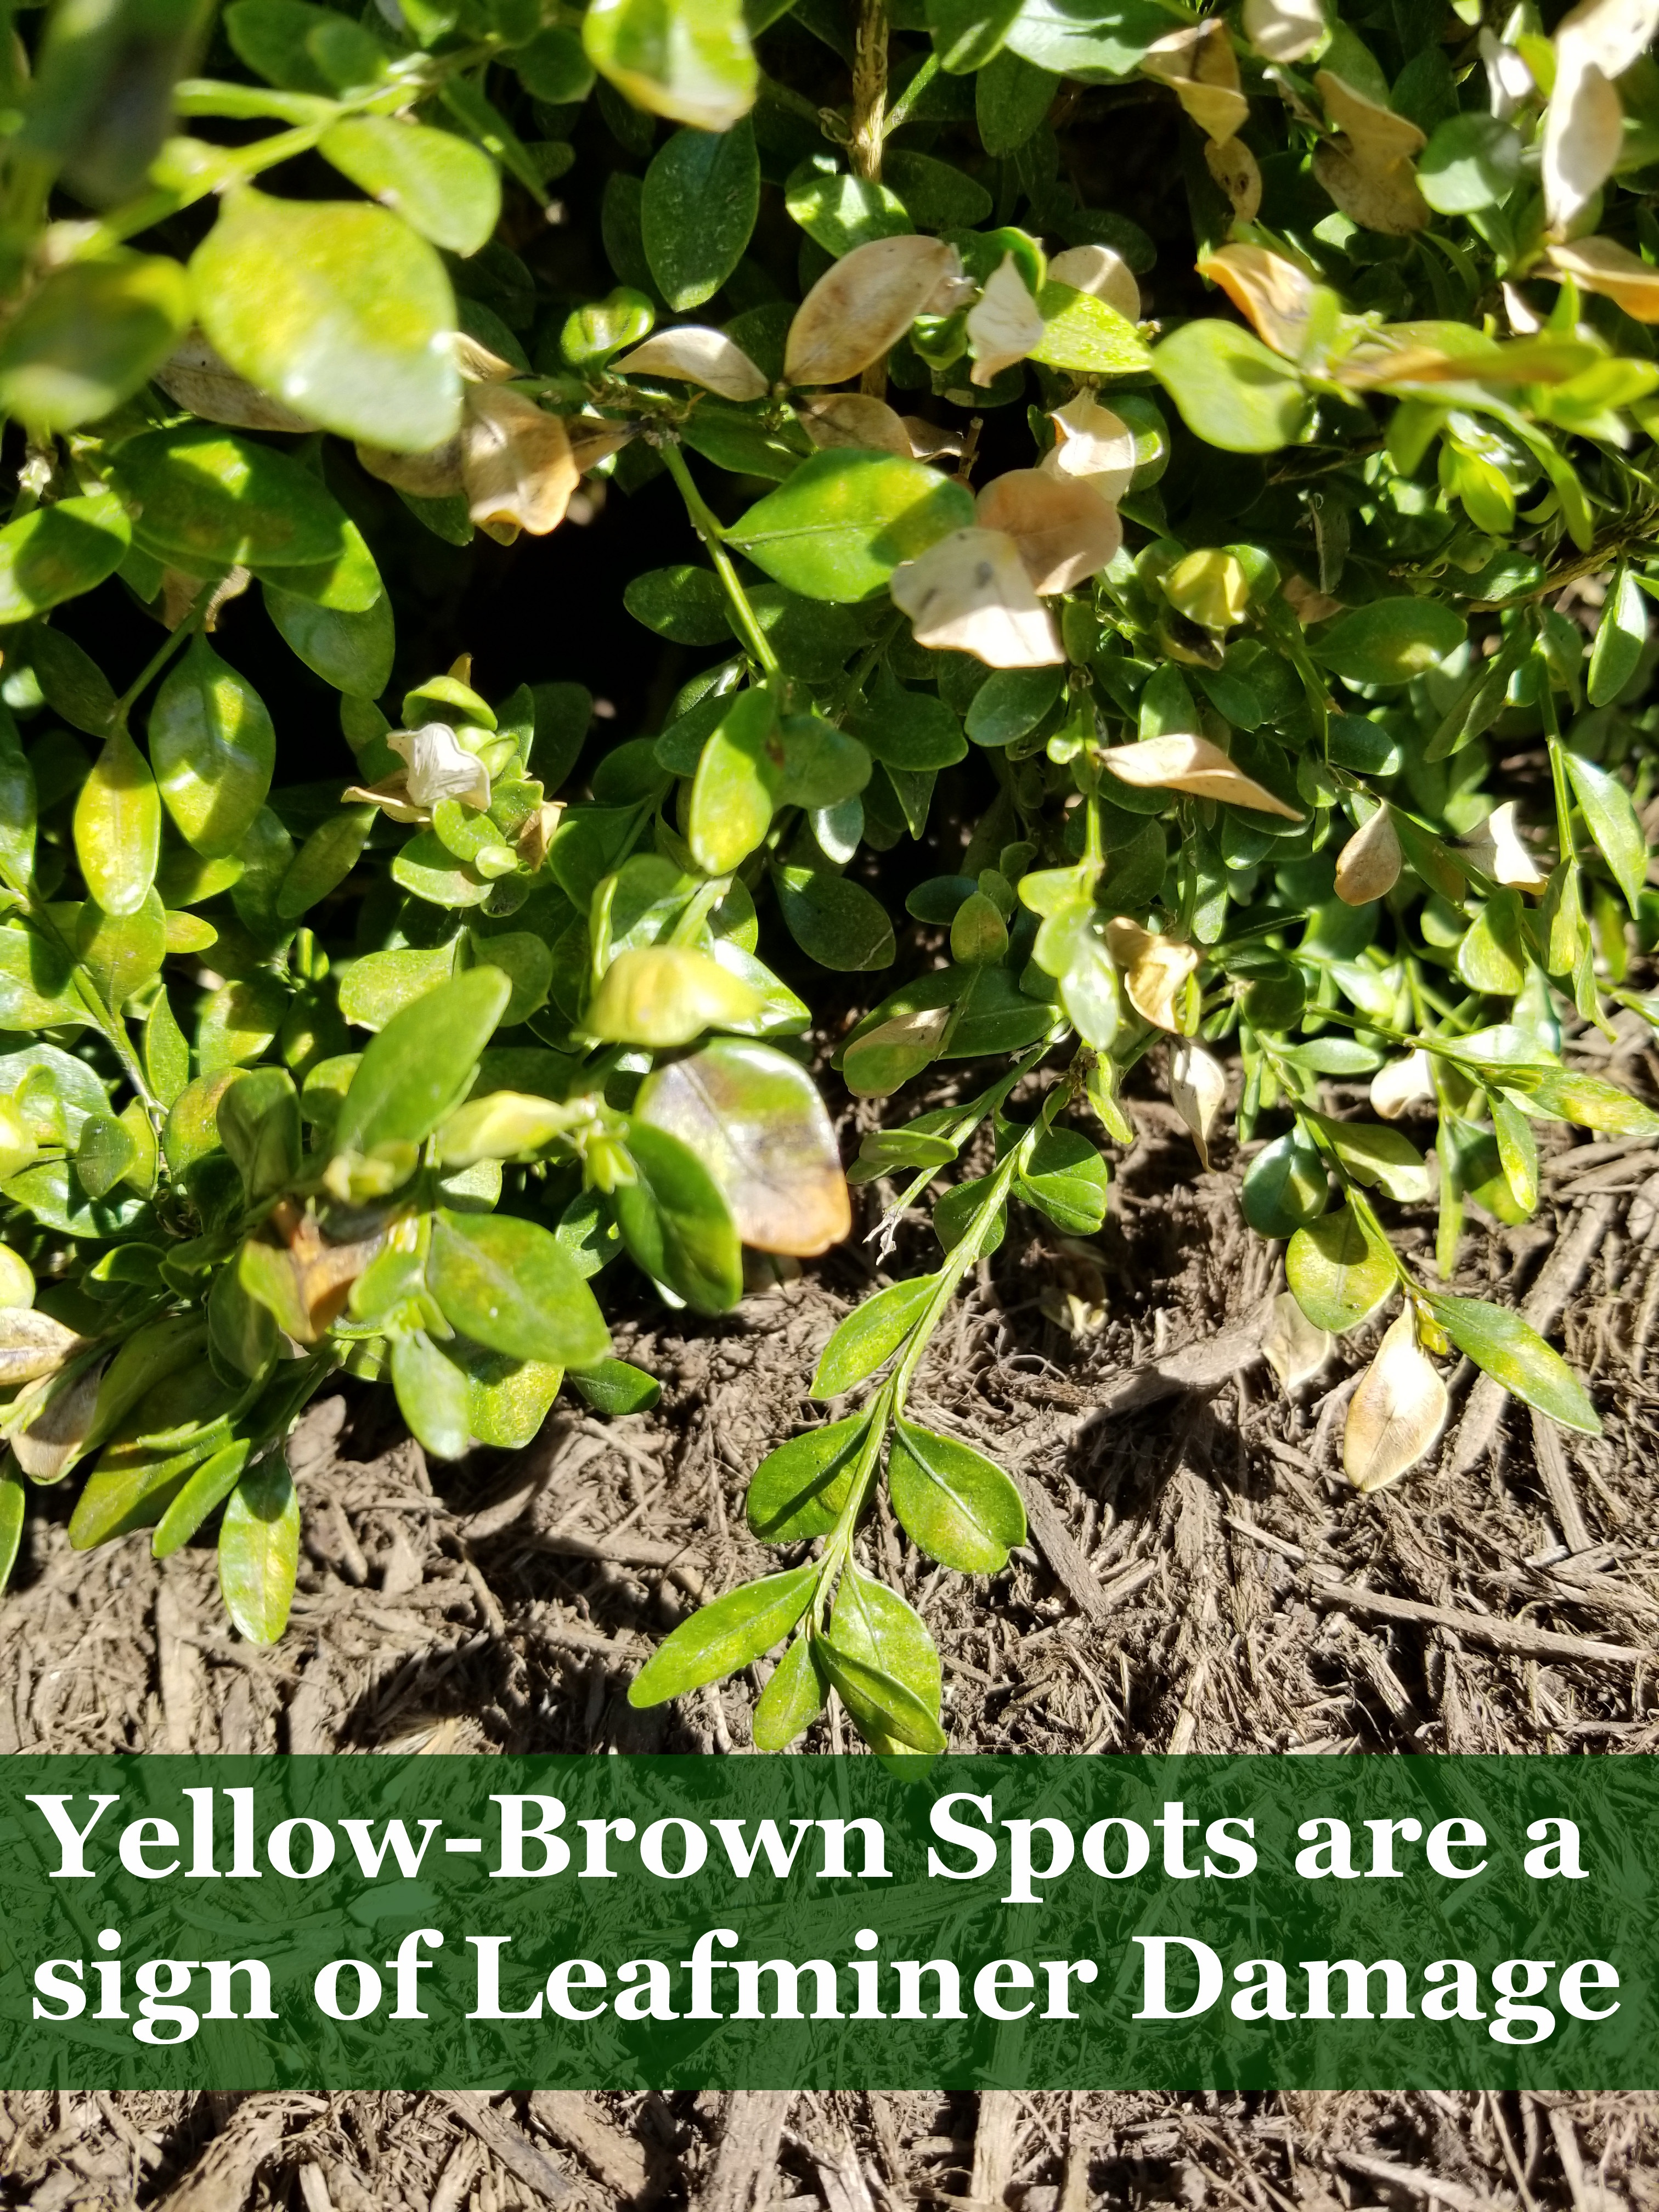 2018-Boxwood-Leaf-Miner-Damage-Yellow-Brown-Leaves